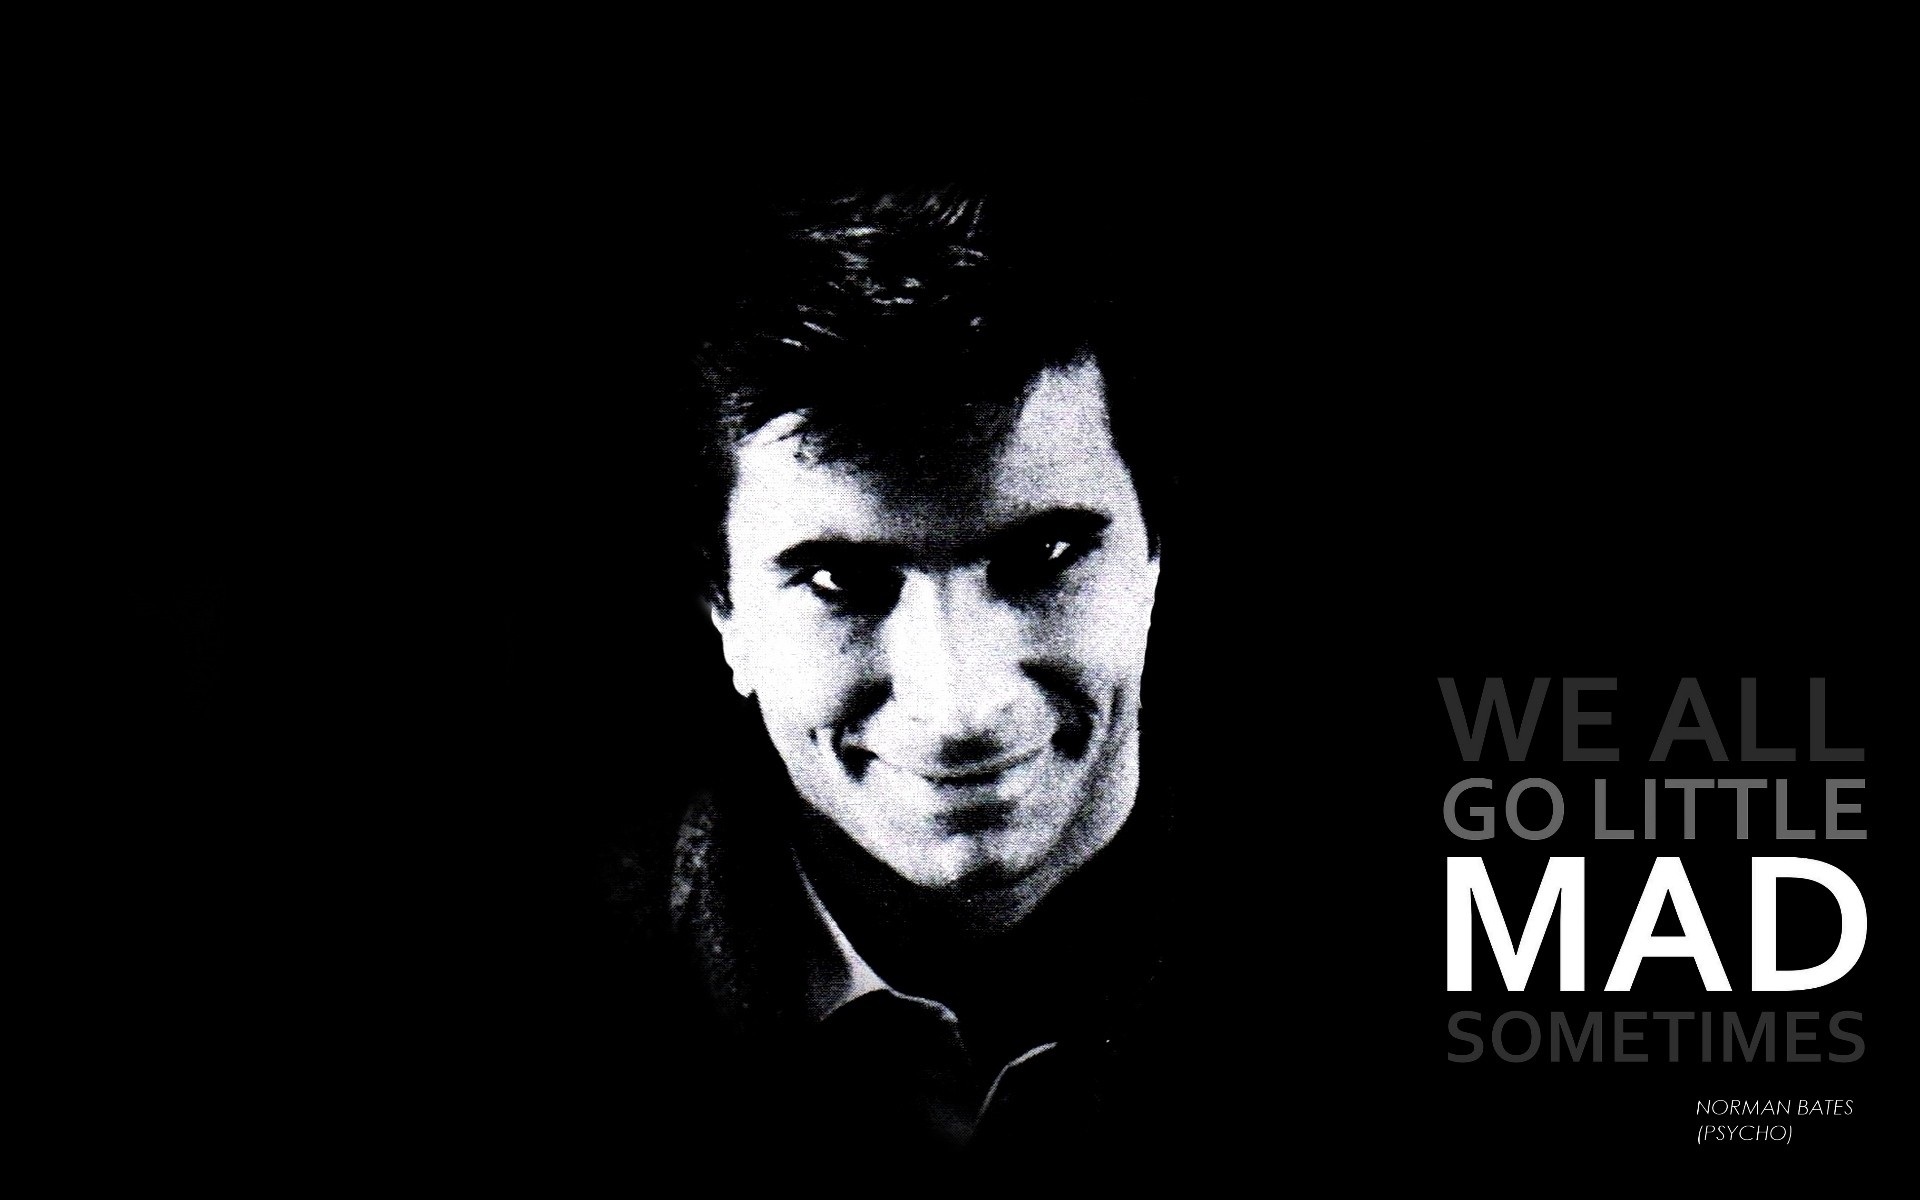 Quotes Psycho Wallpaper 1920x1200 Quotes Psycho Grayscale Alfred 1920x1200